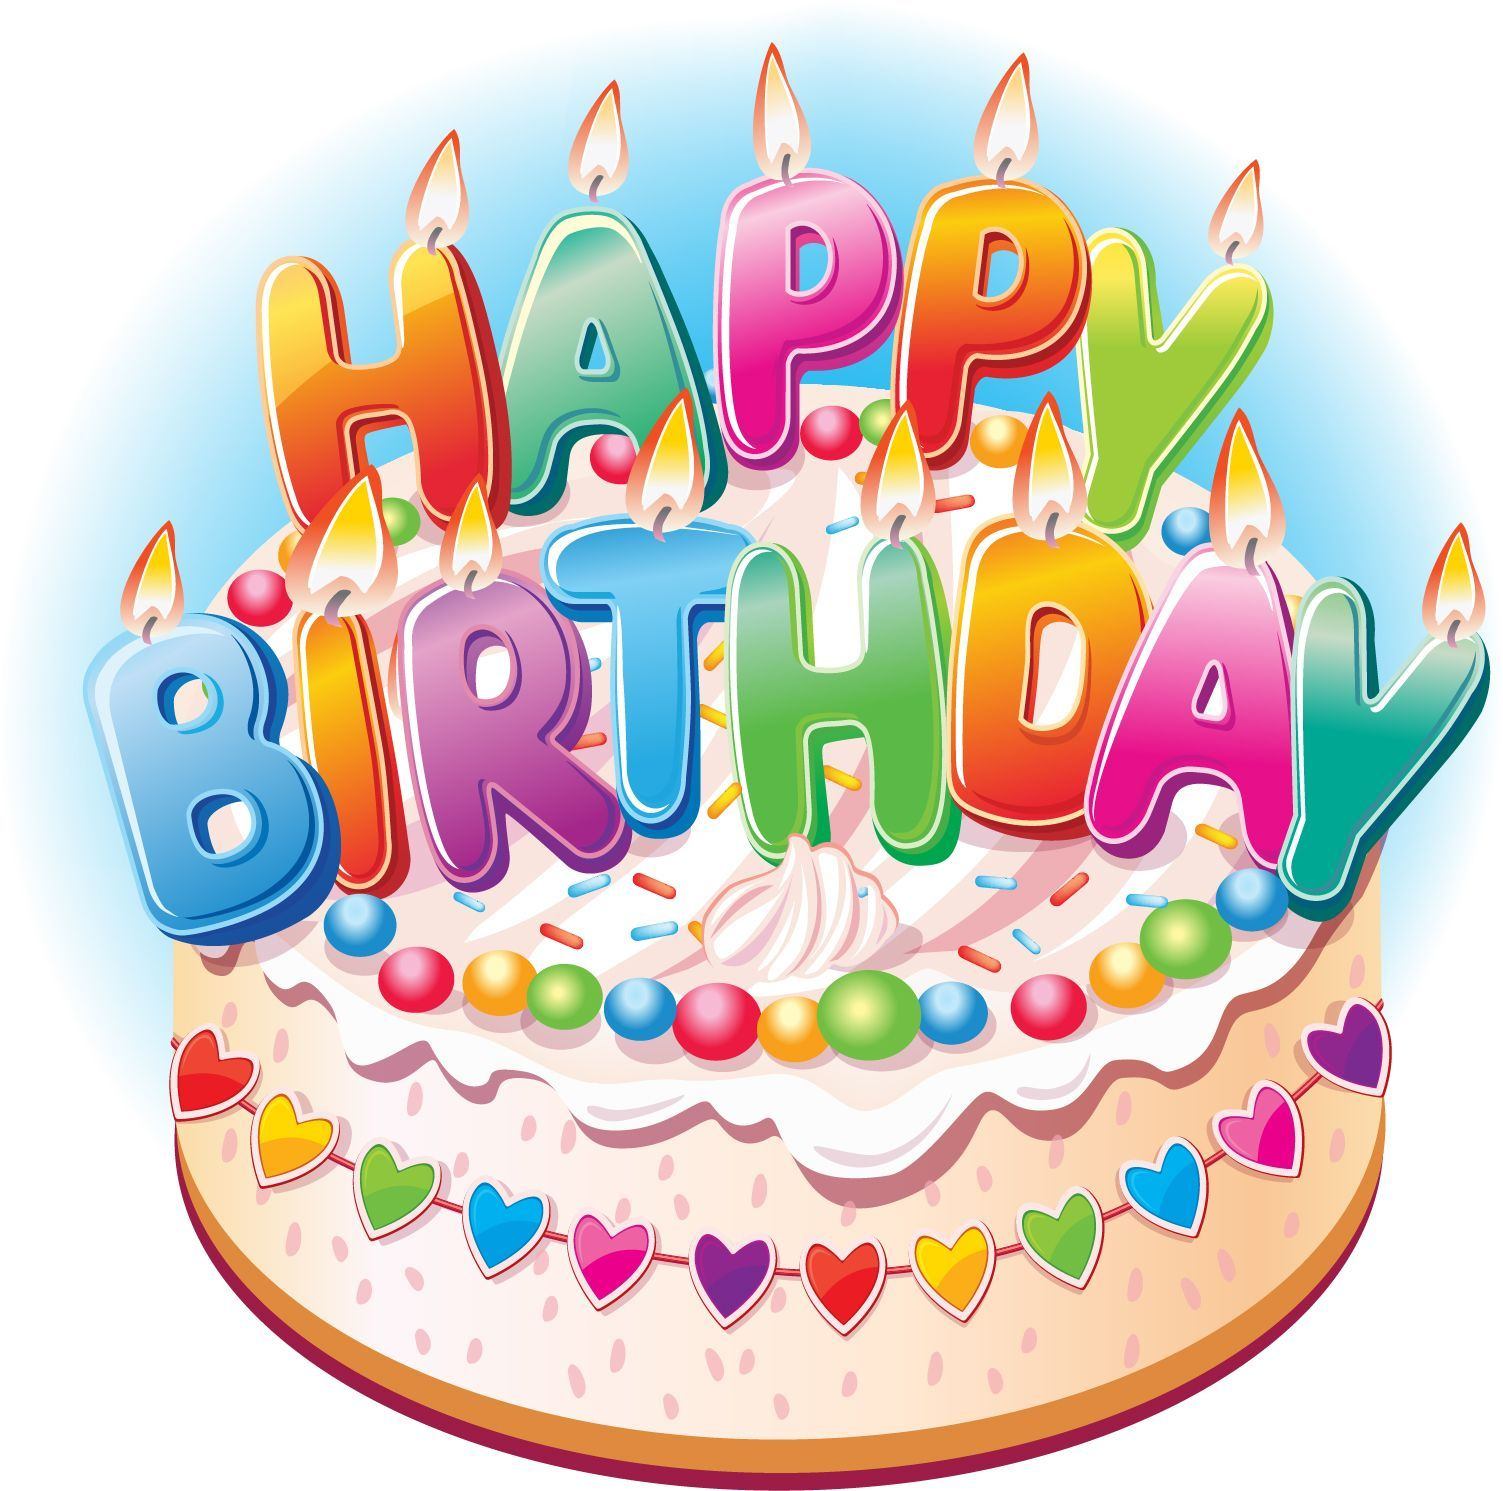 Free Happy Birthday Greeting Just Add The Name And Post It Email Or